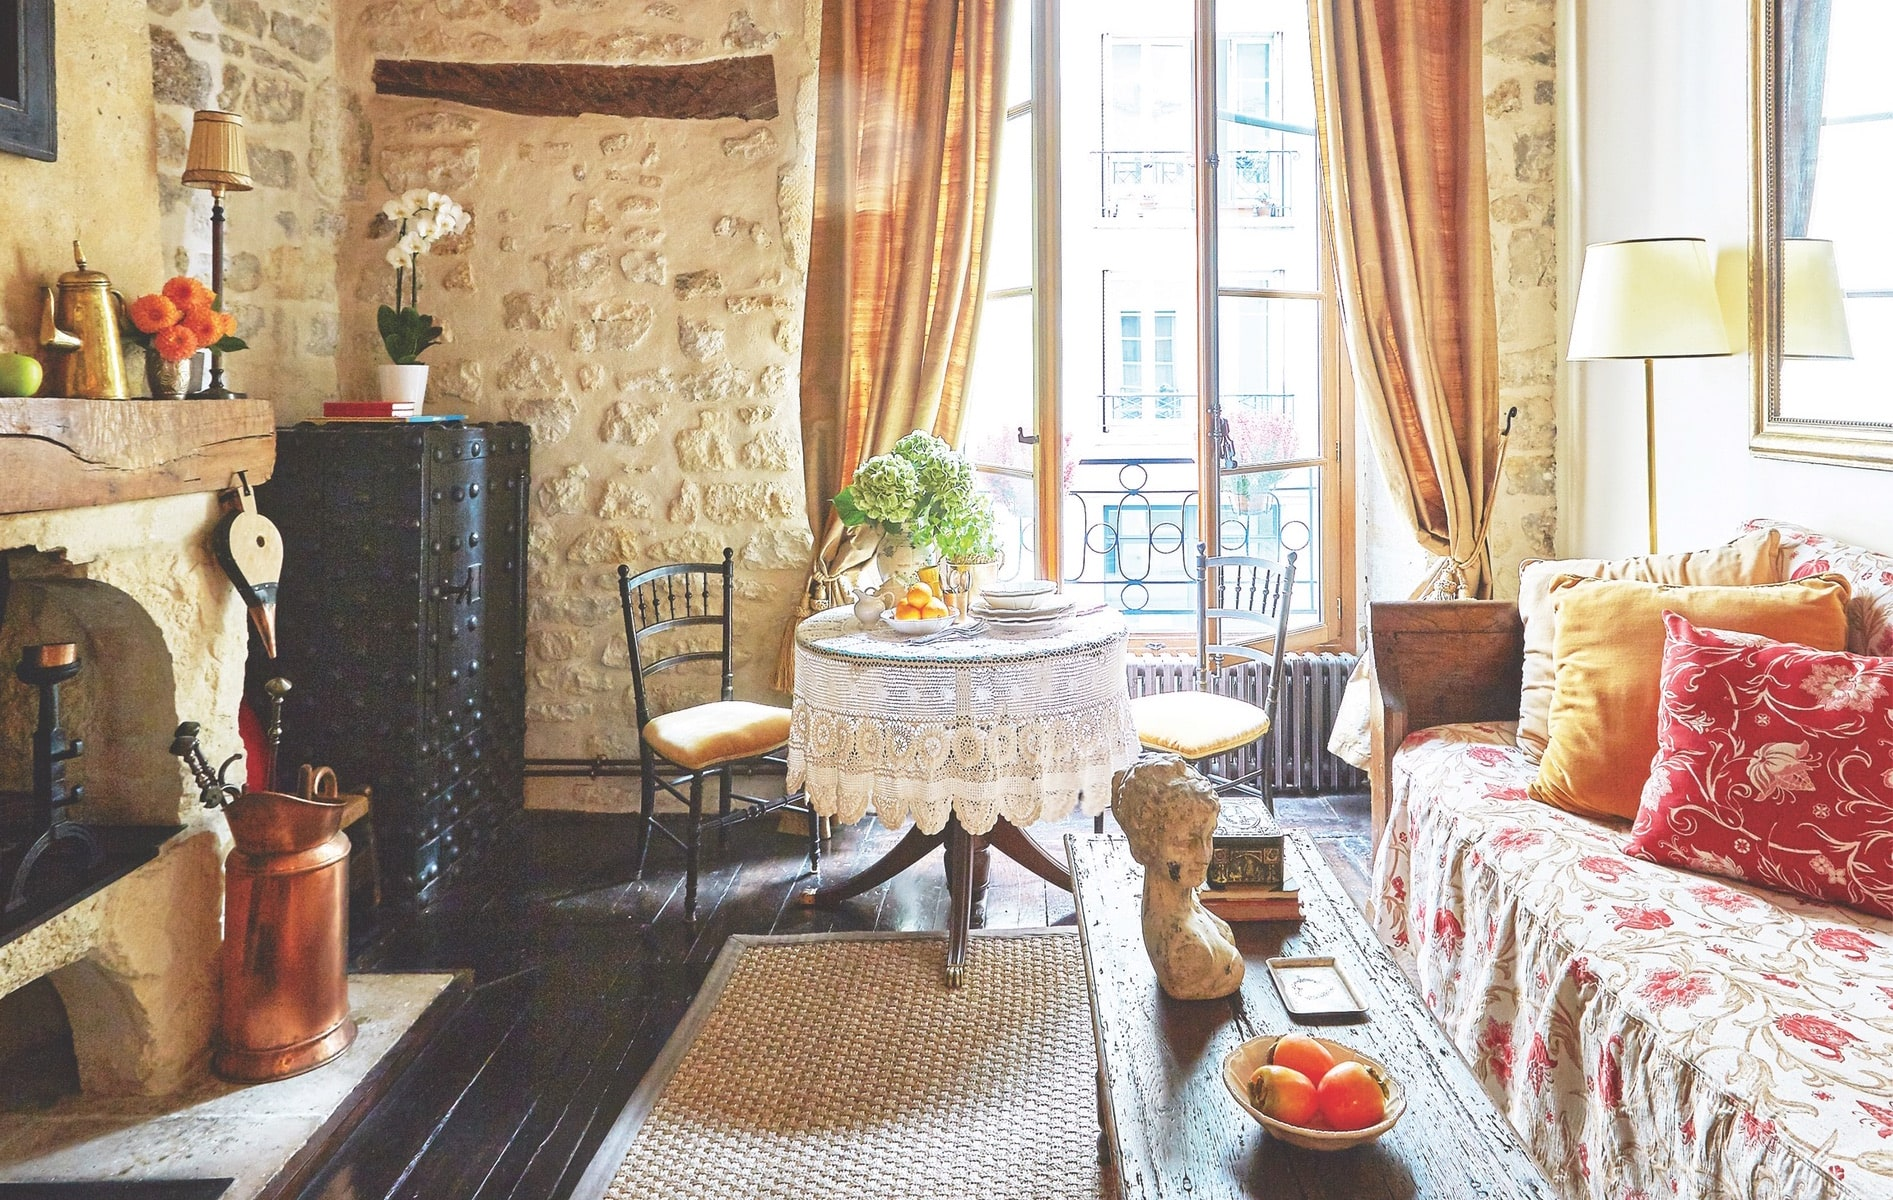 This perfect little pied-à-terre on Île Saint-Louis in Paris was built in 1652 and later renovated by a French filmmaker. It is available for rent through VRBO.com.